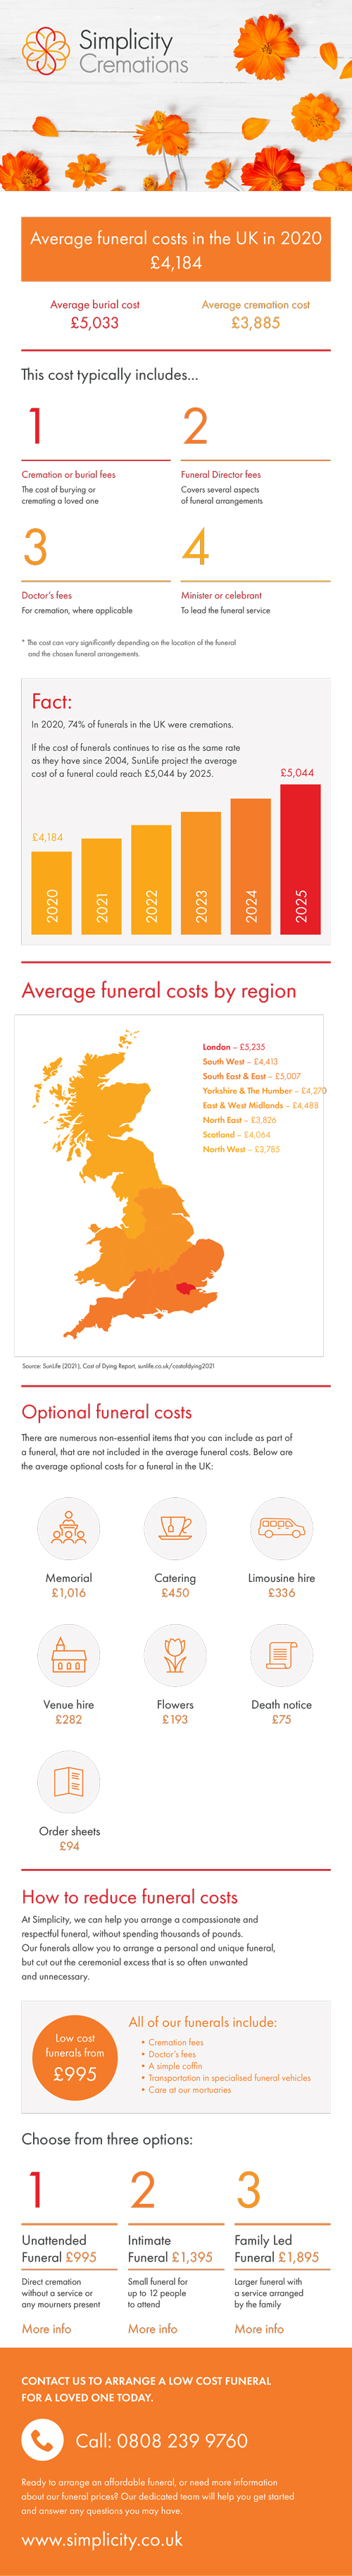 Average funeral costs infographic